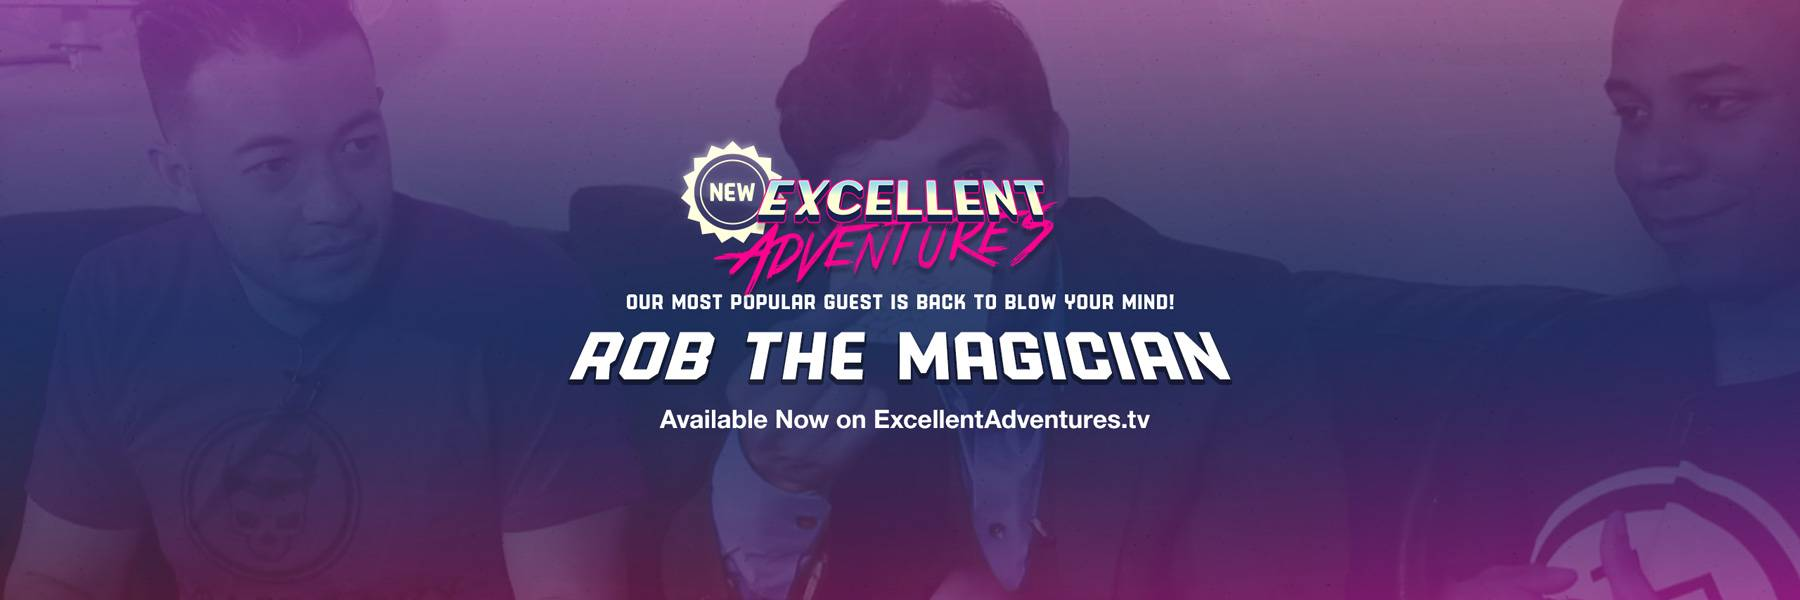 Be ready to be dazzled by some smooth magic tricks!